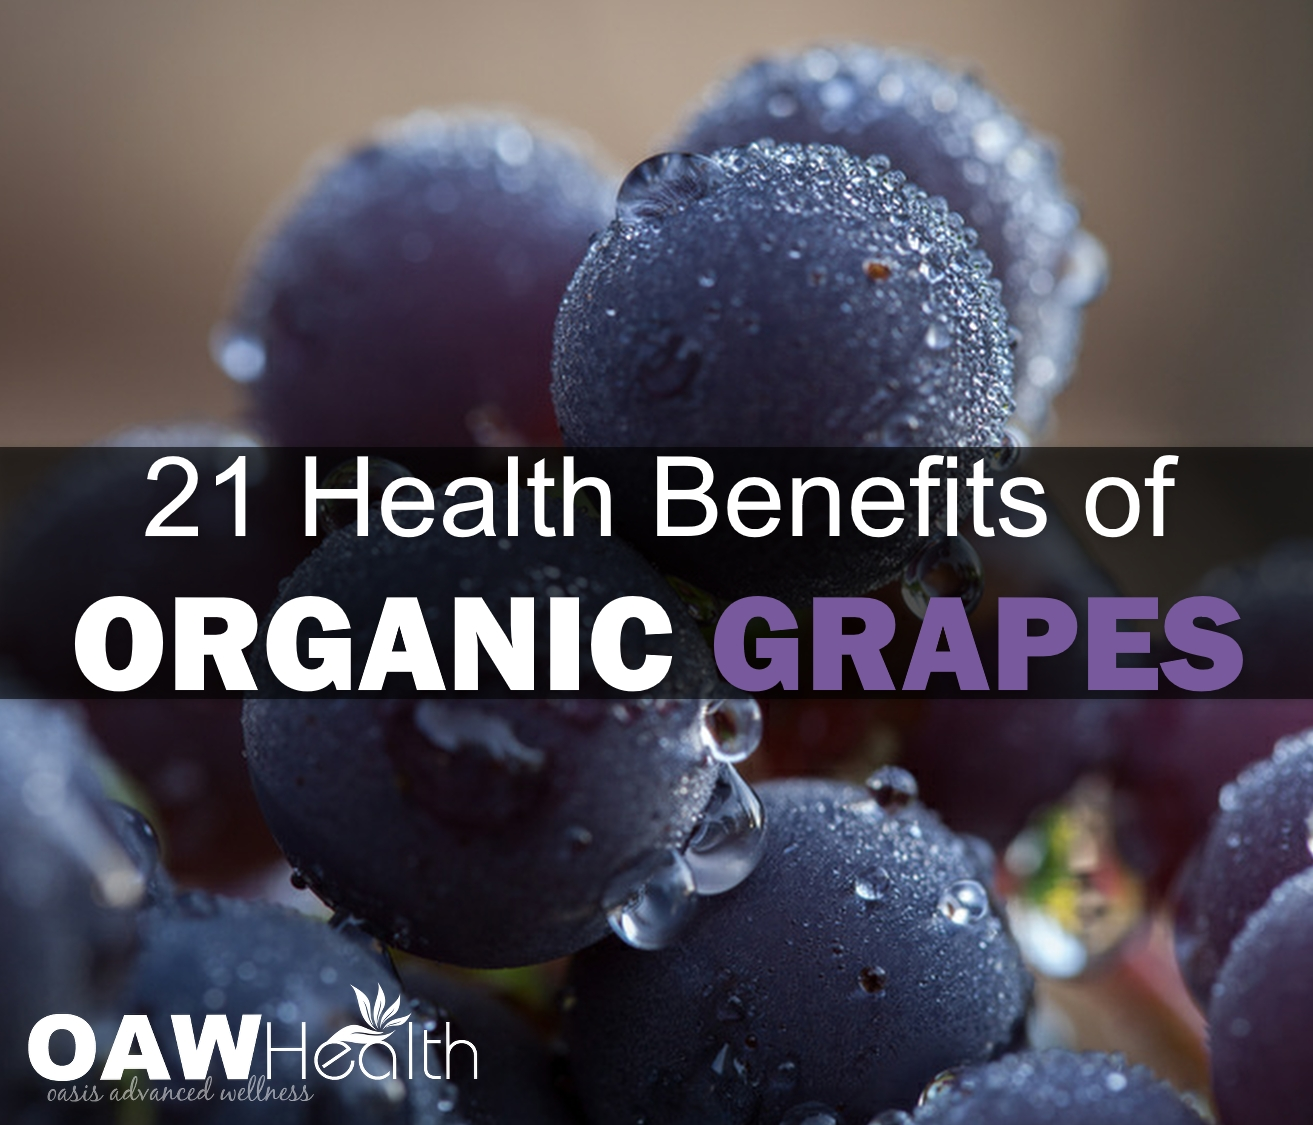 21 Health Benefits of Organic Grapes